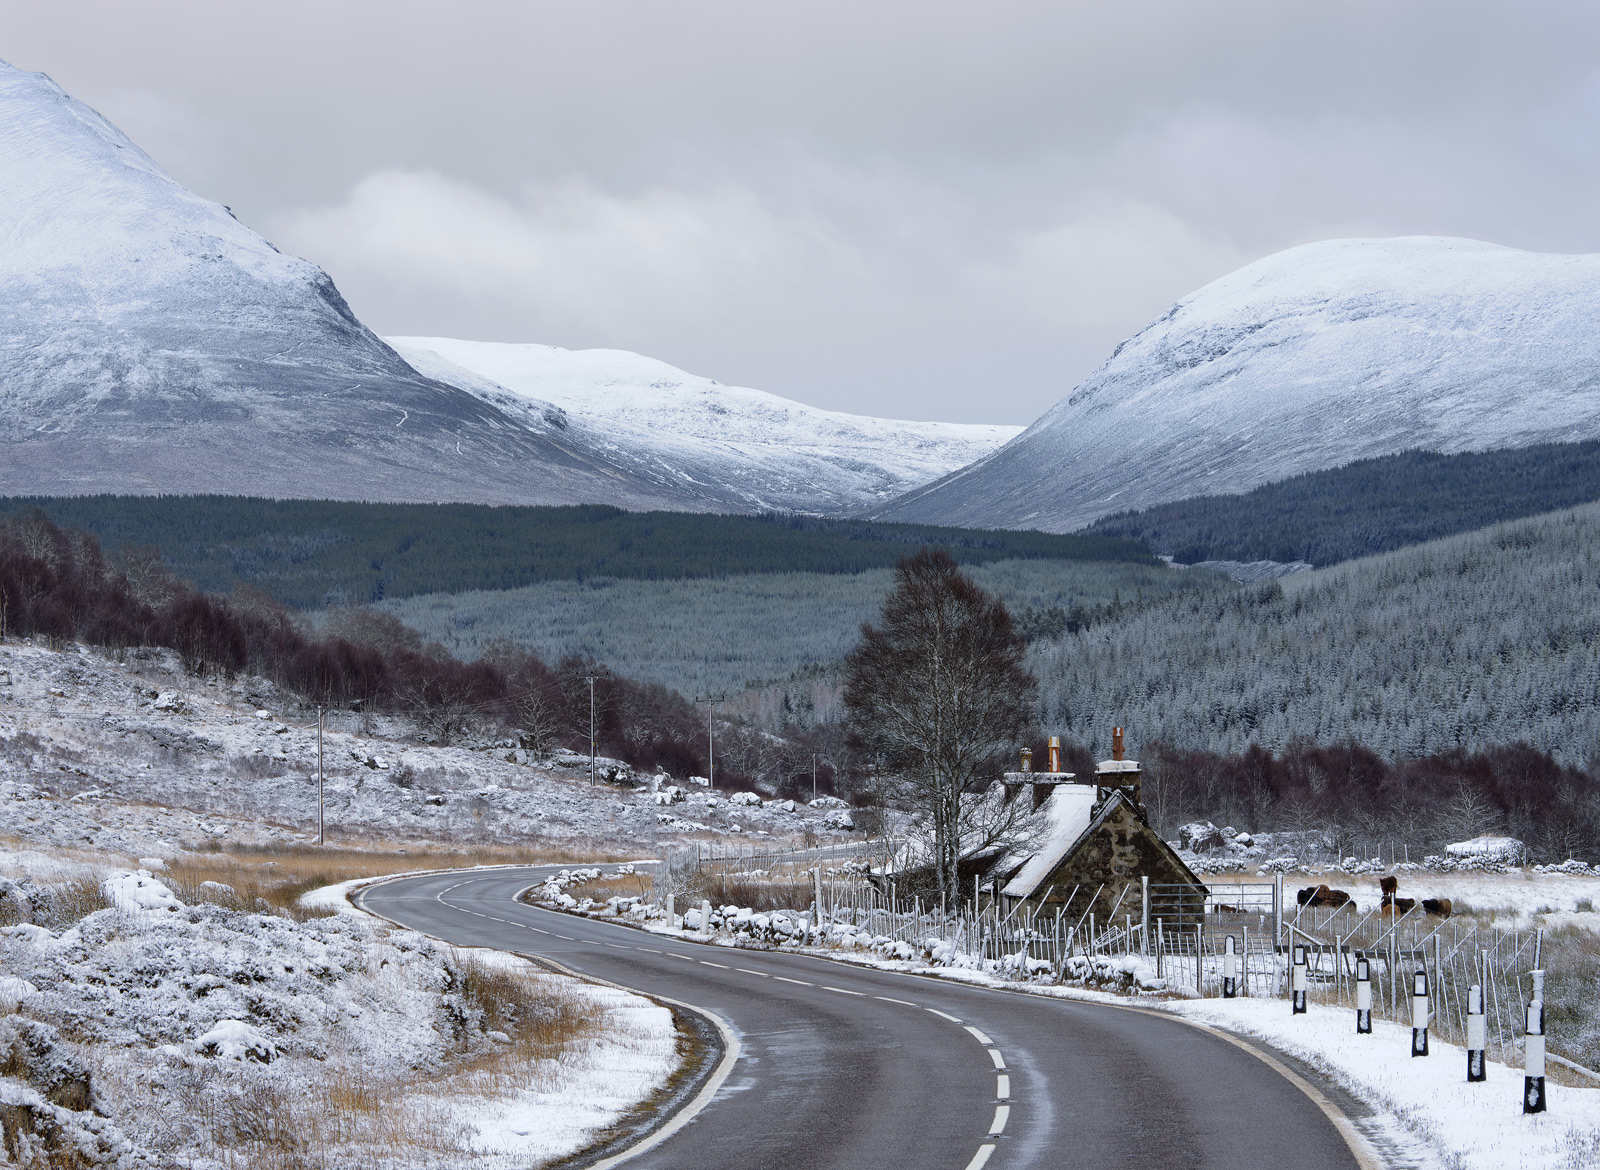 The road weaves itself through the snow clad tops of Ben Wyvis passing by Lubfearn house on its way to Glascarnoch and thence...